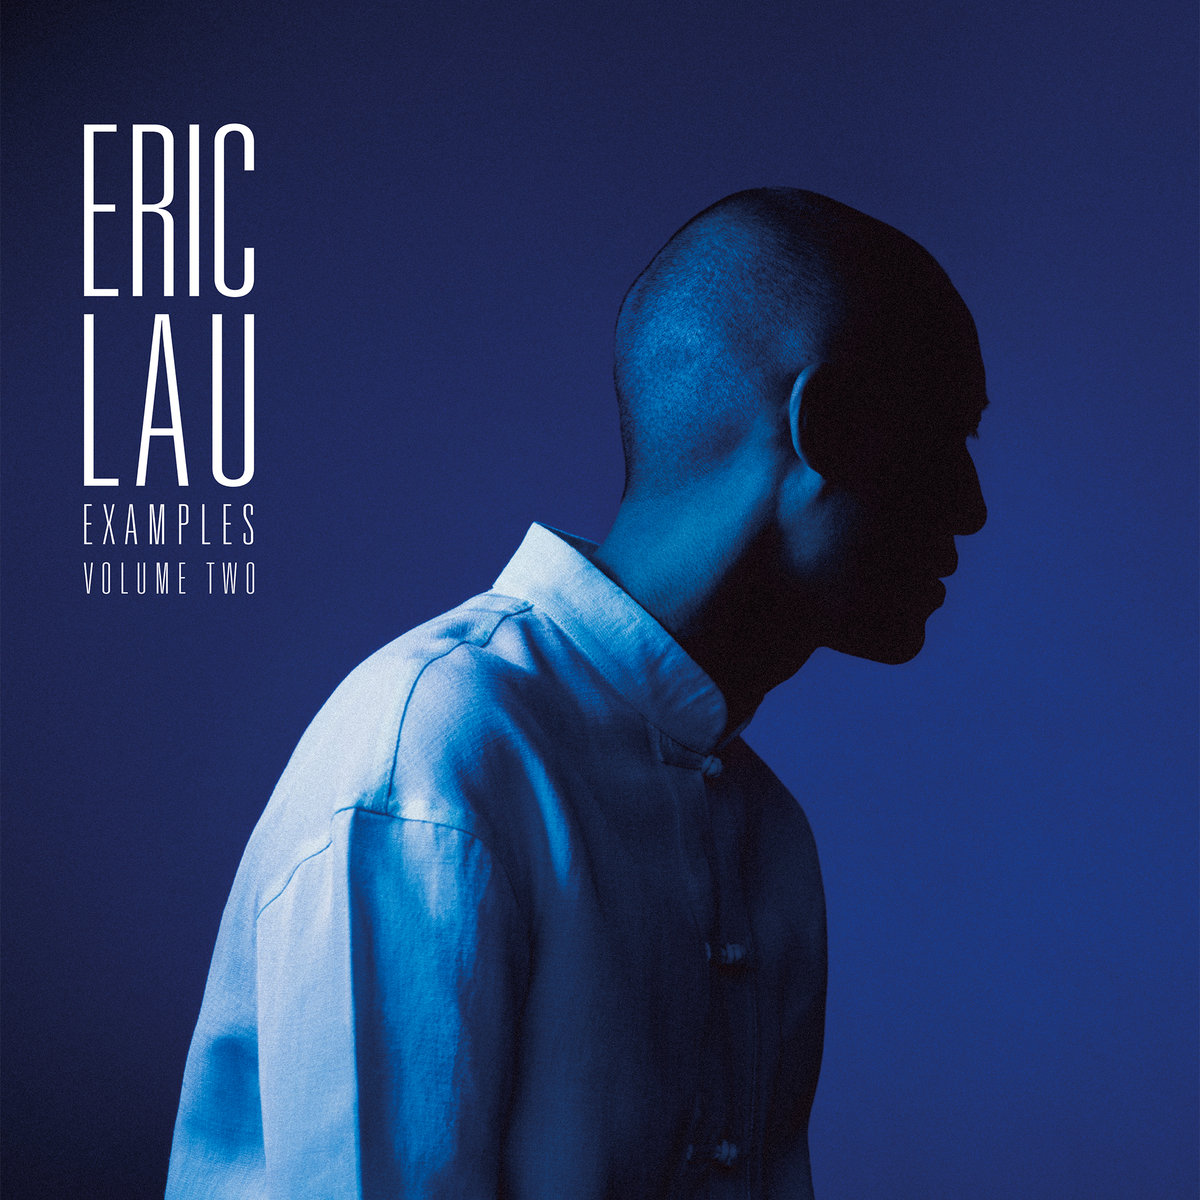 News: Respected DJ & Producer; Eric Lau Returns To First Word Records With Examples VolumeTwo